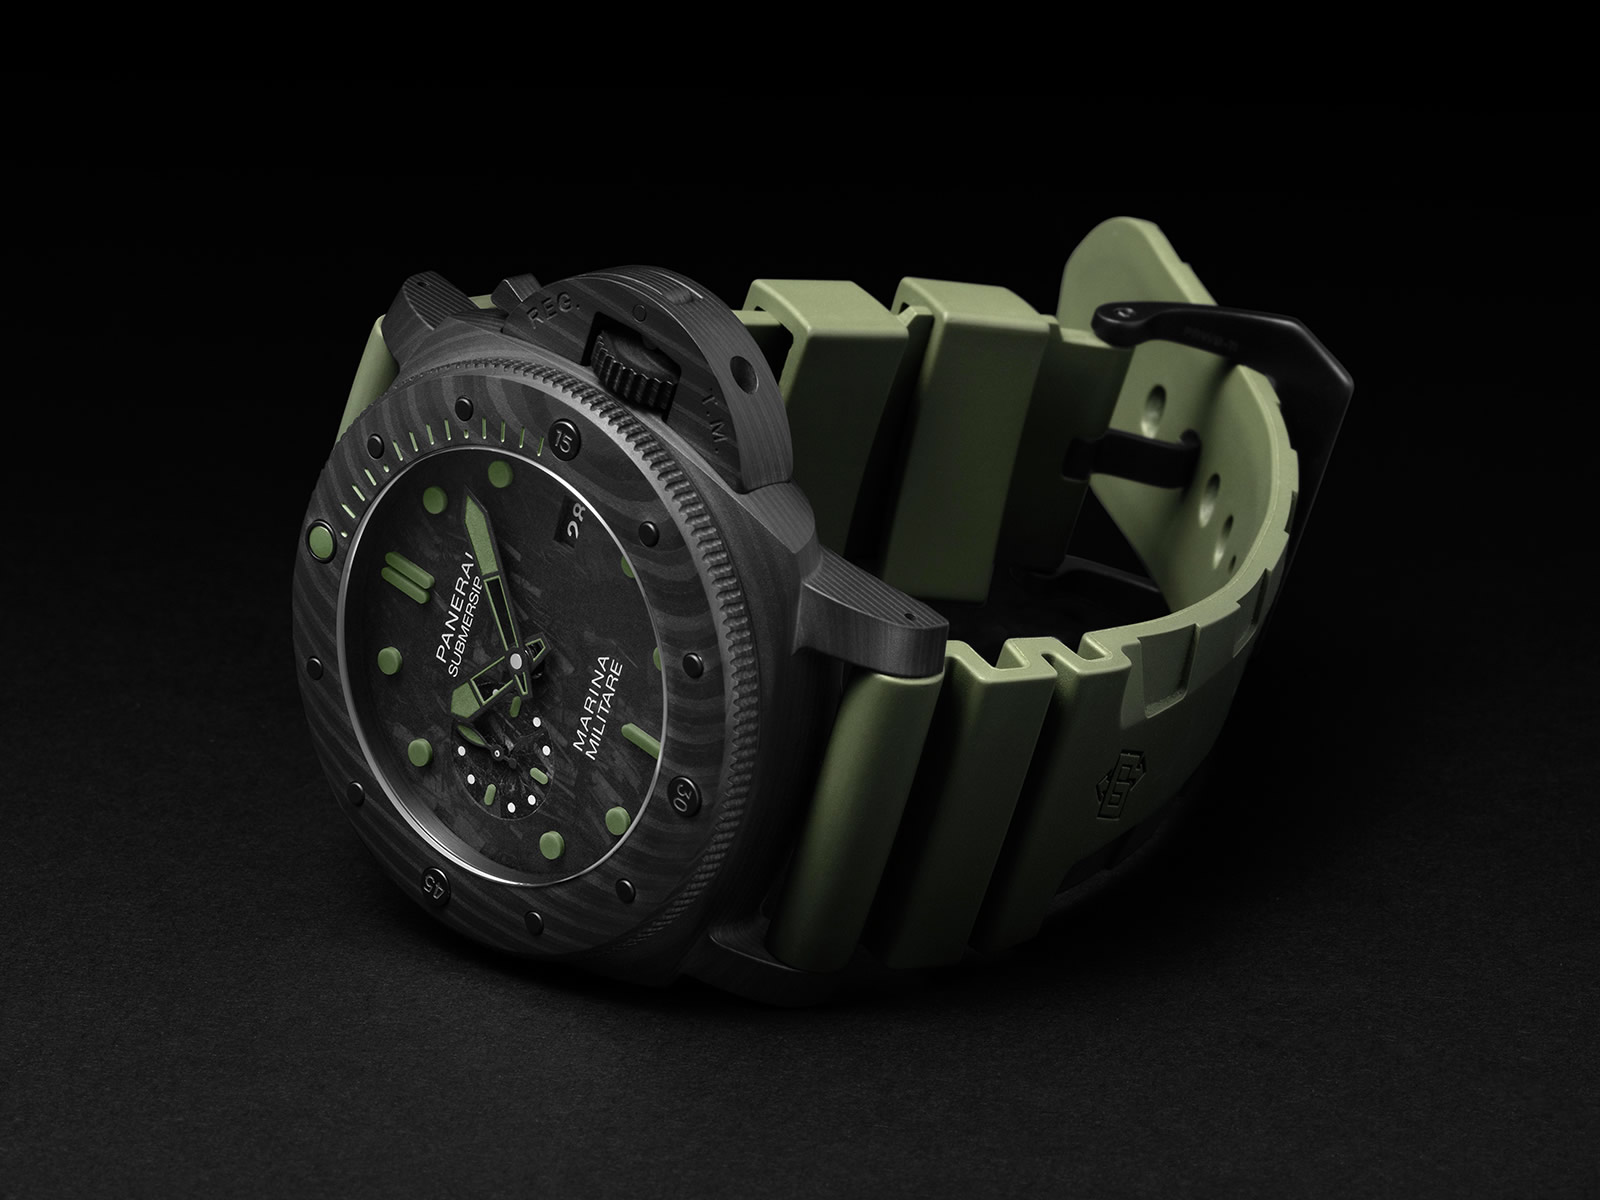 pam00961-officine-panerai-submersible-marina-militare-carbotech-1-.jpg